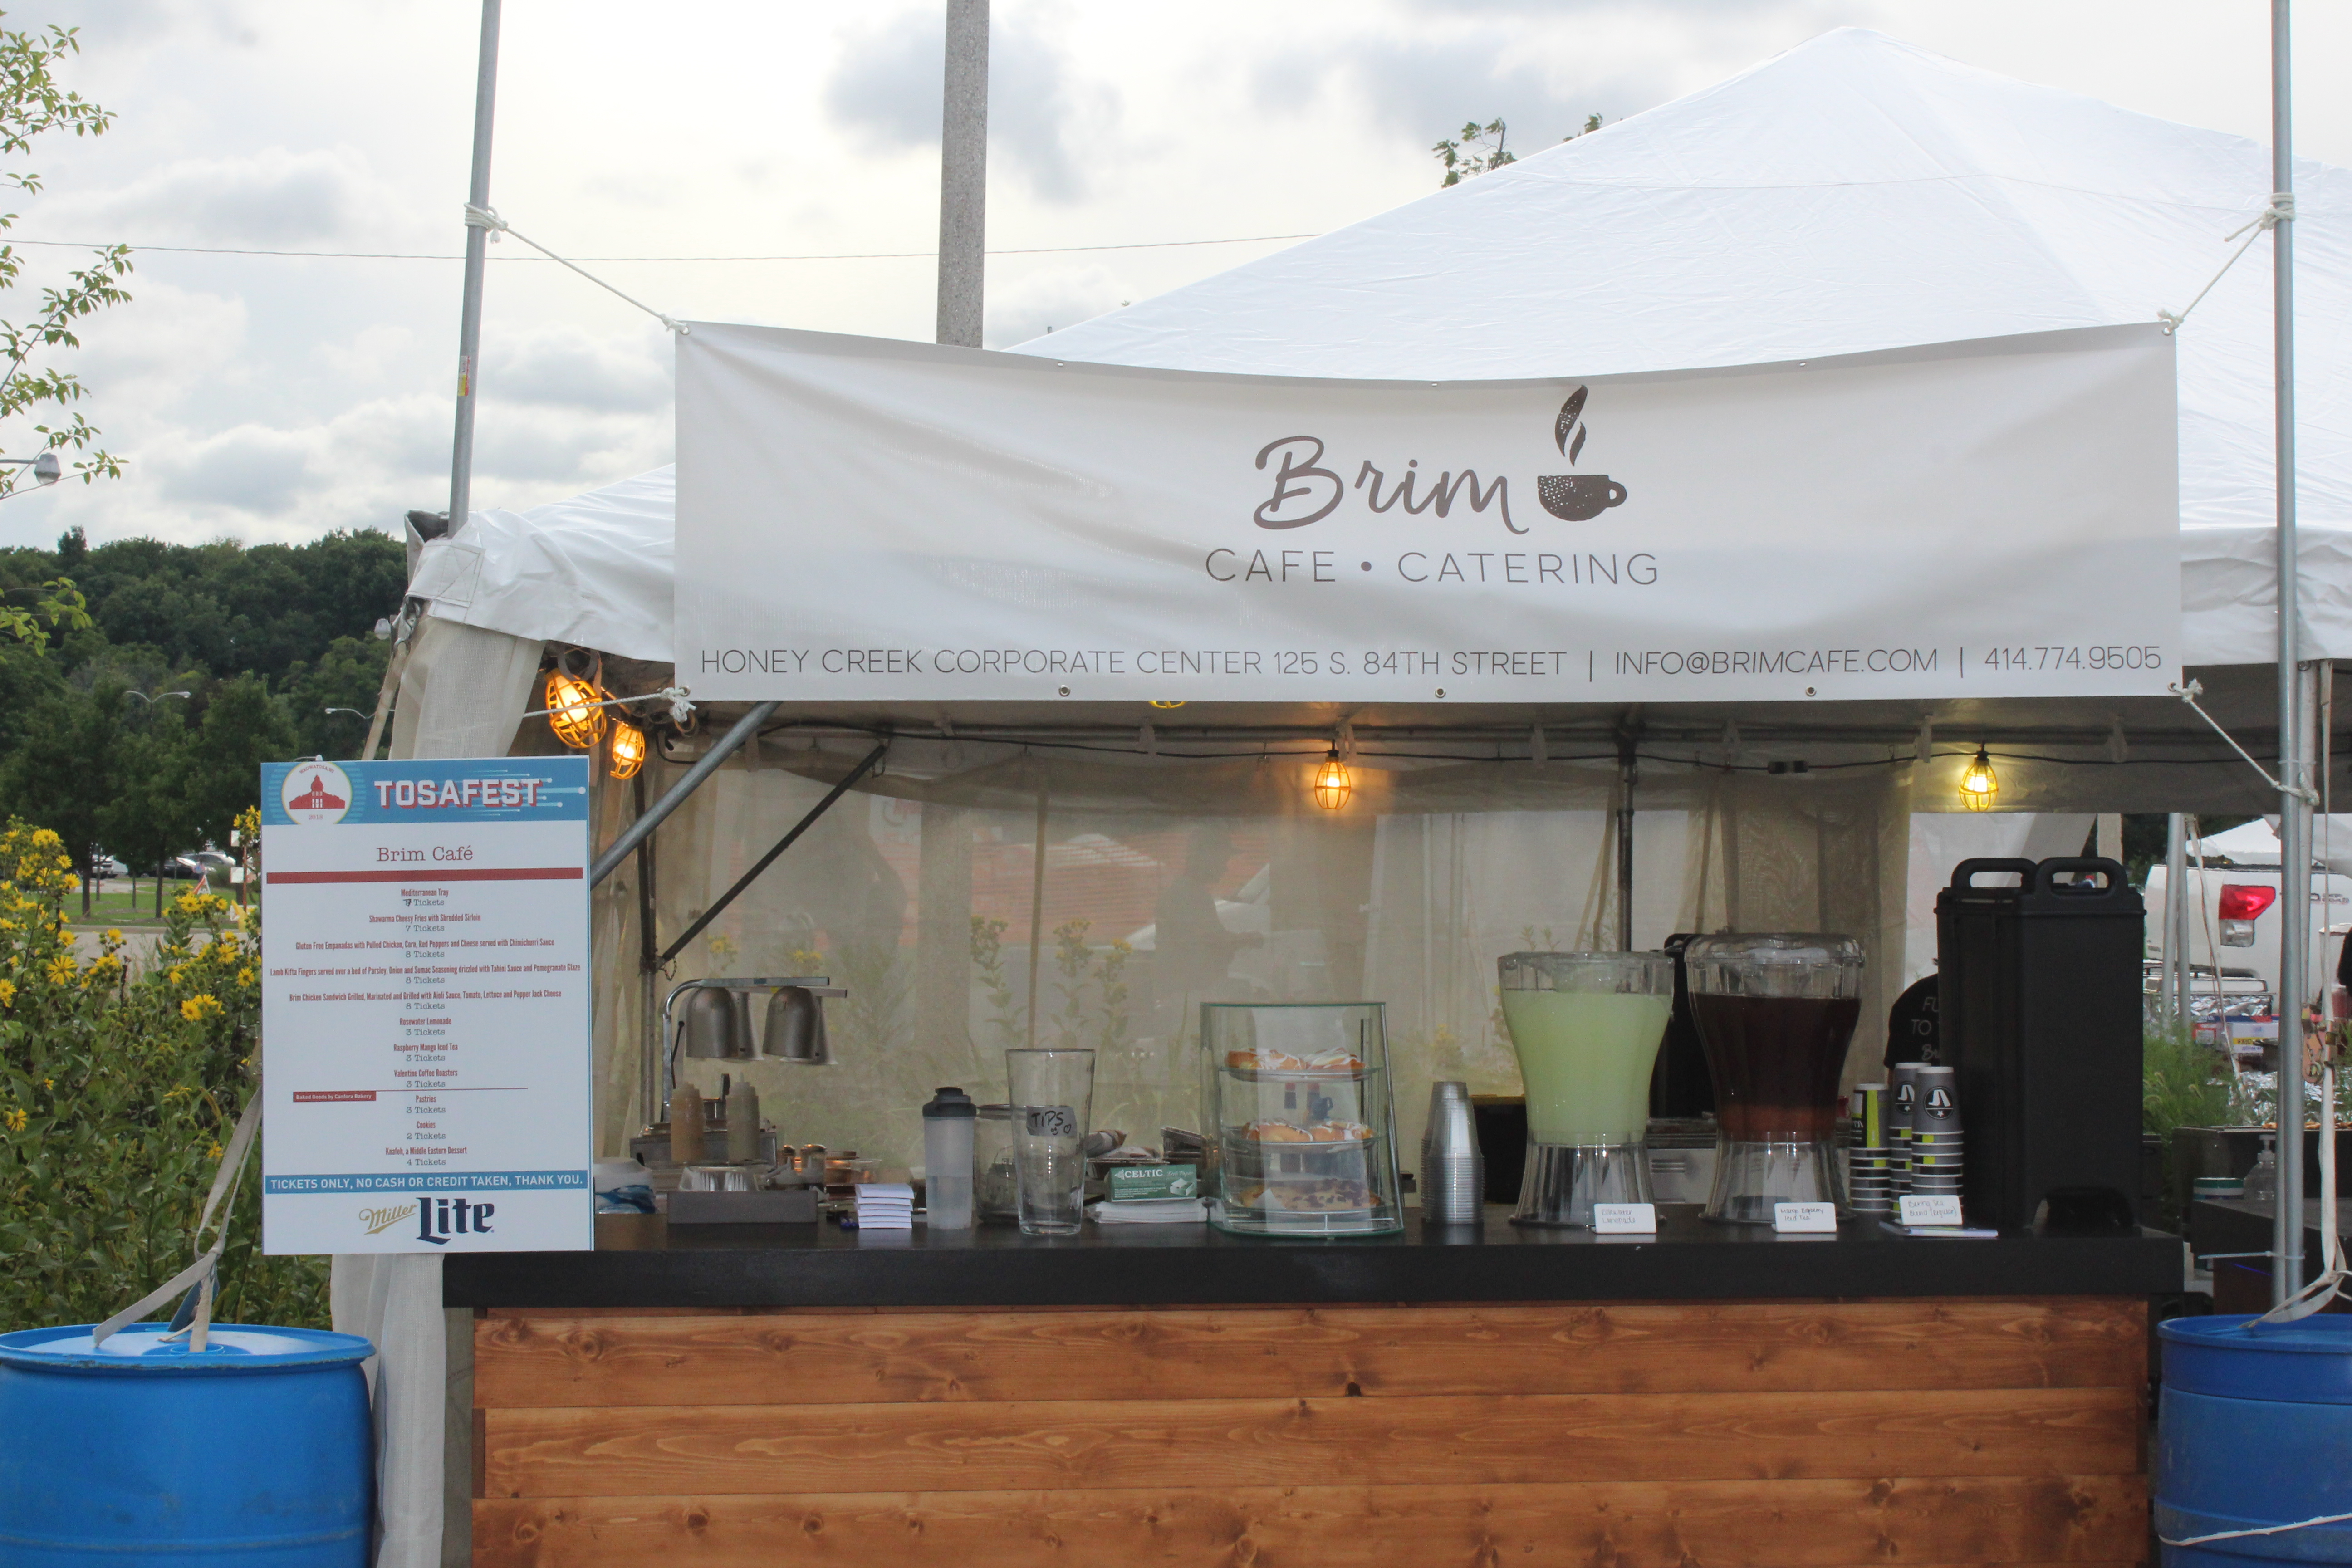 Brim-Cafe-Catering-Wauwatosa-Tosafest